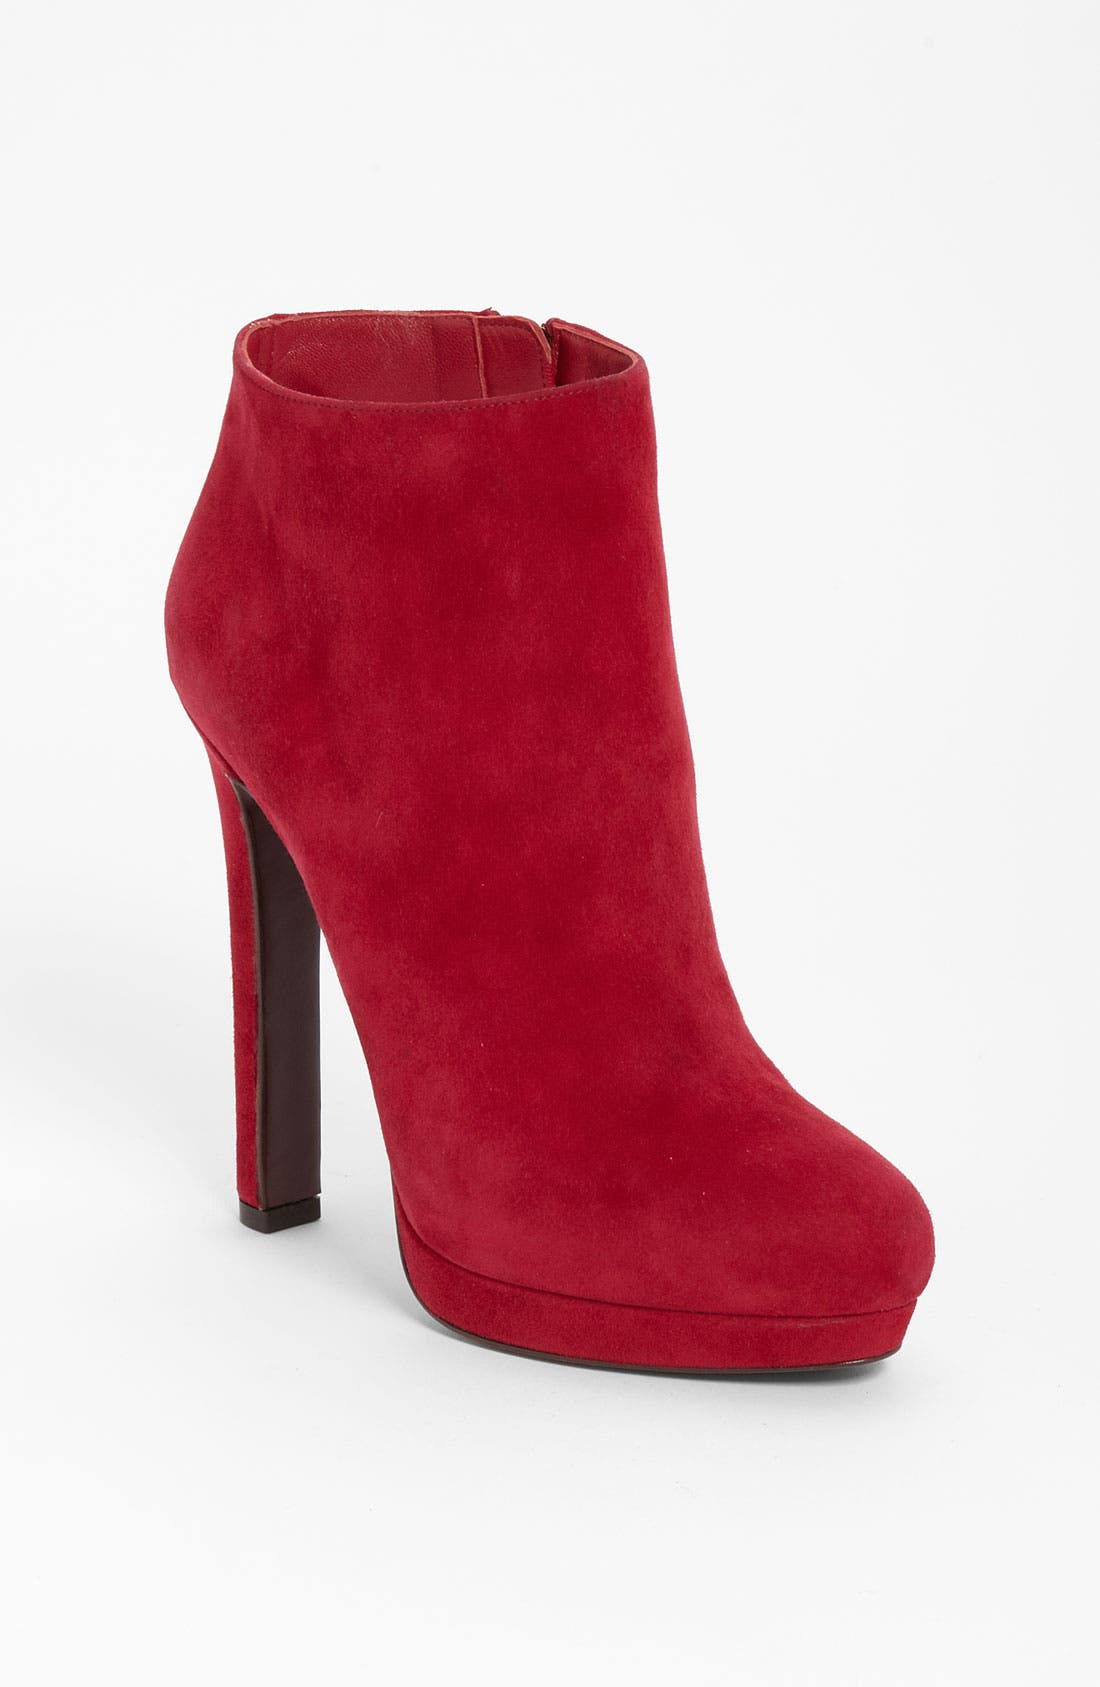 Alternate Image 1 Selected - Alexander McQueen Suede Bootie